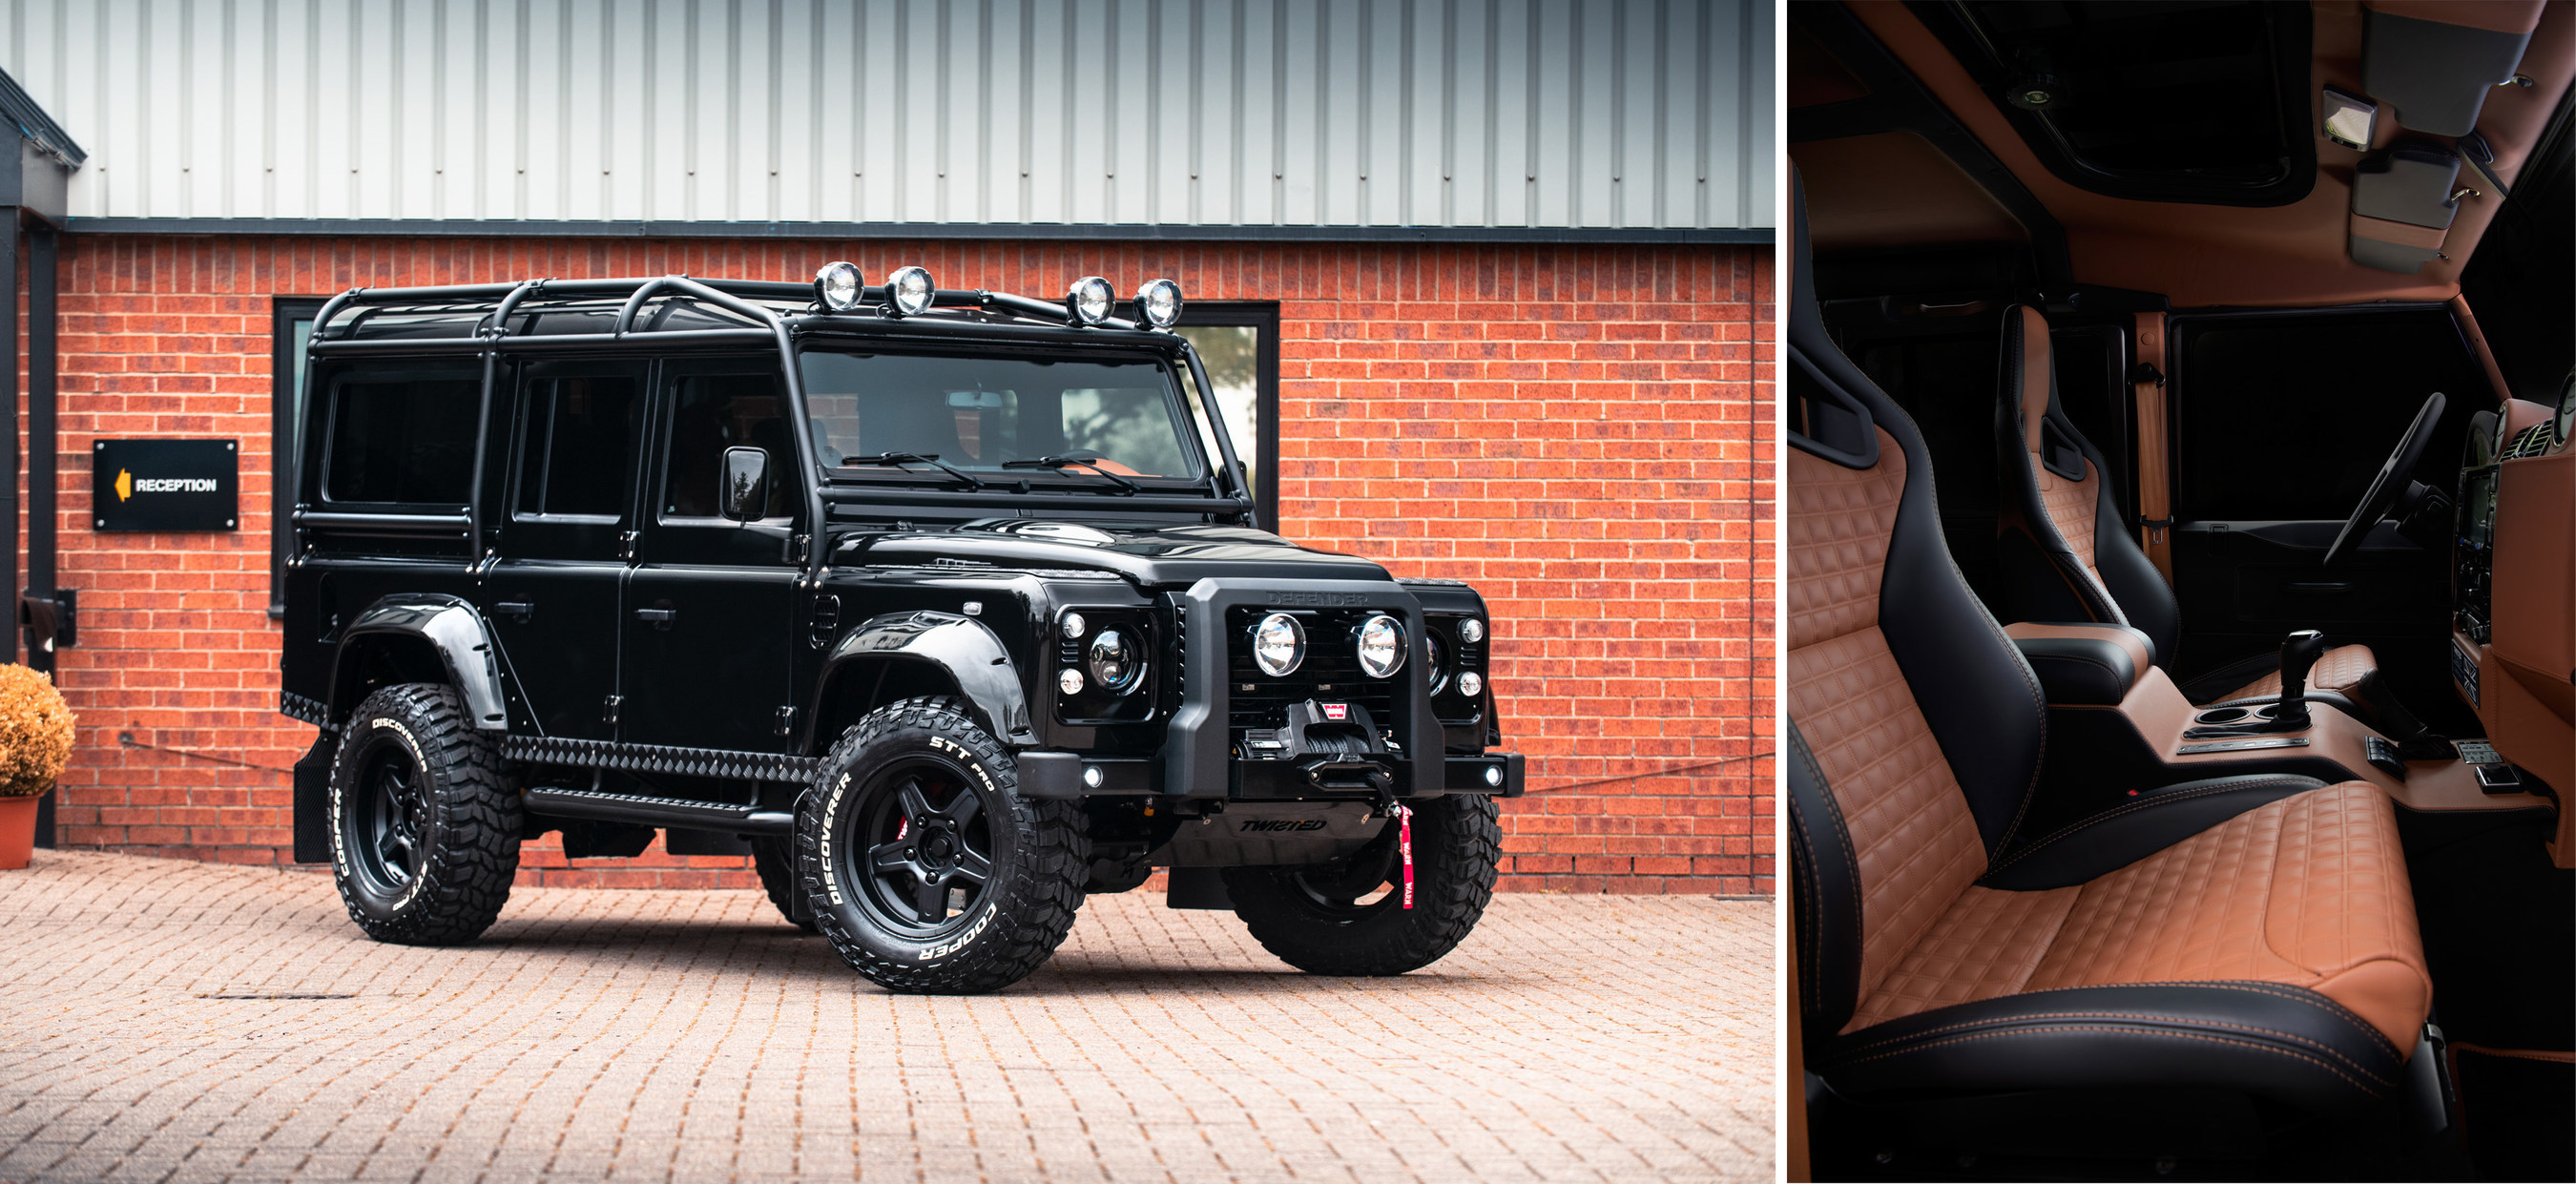 Twisted Iconic British 4x4 Suv Legends Now In Usa